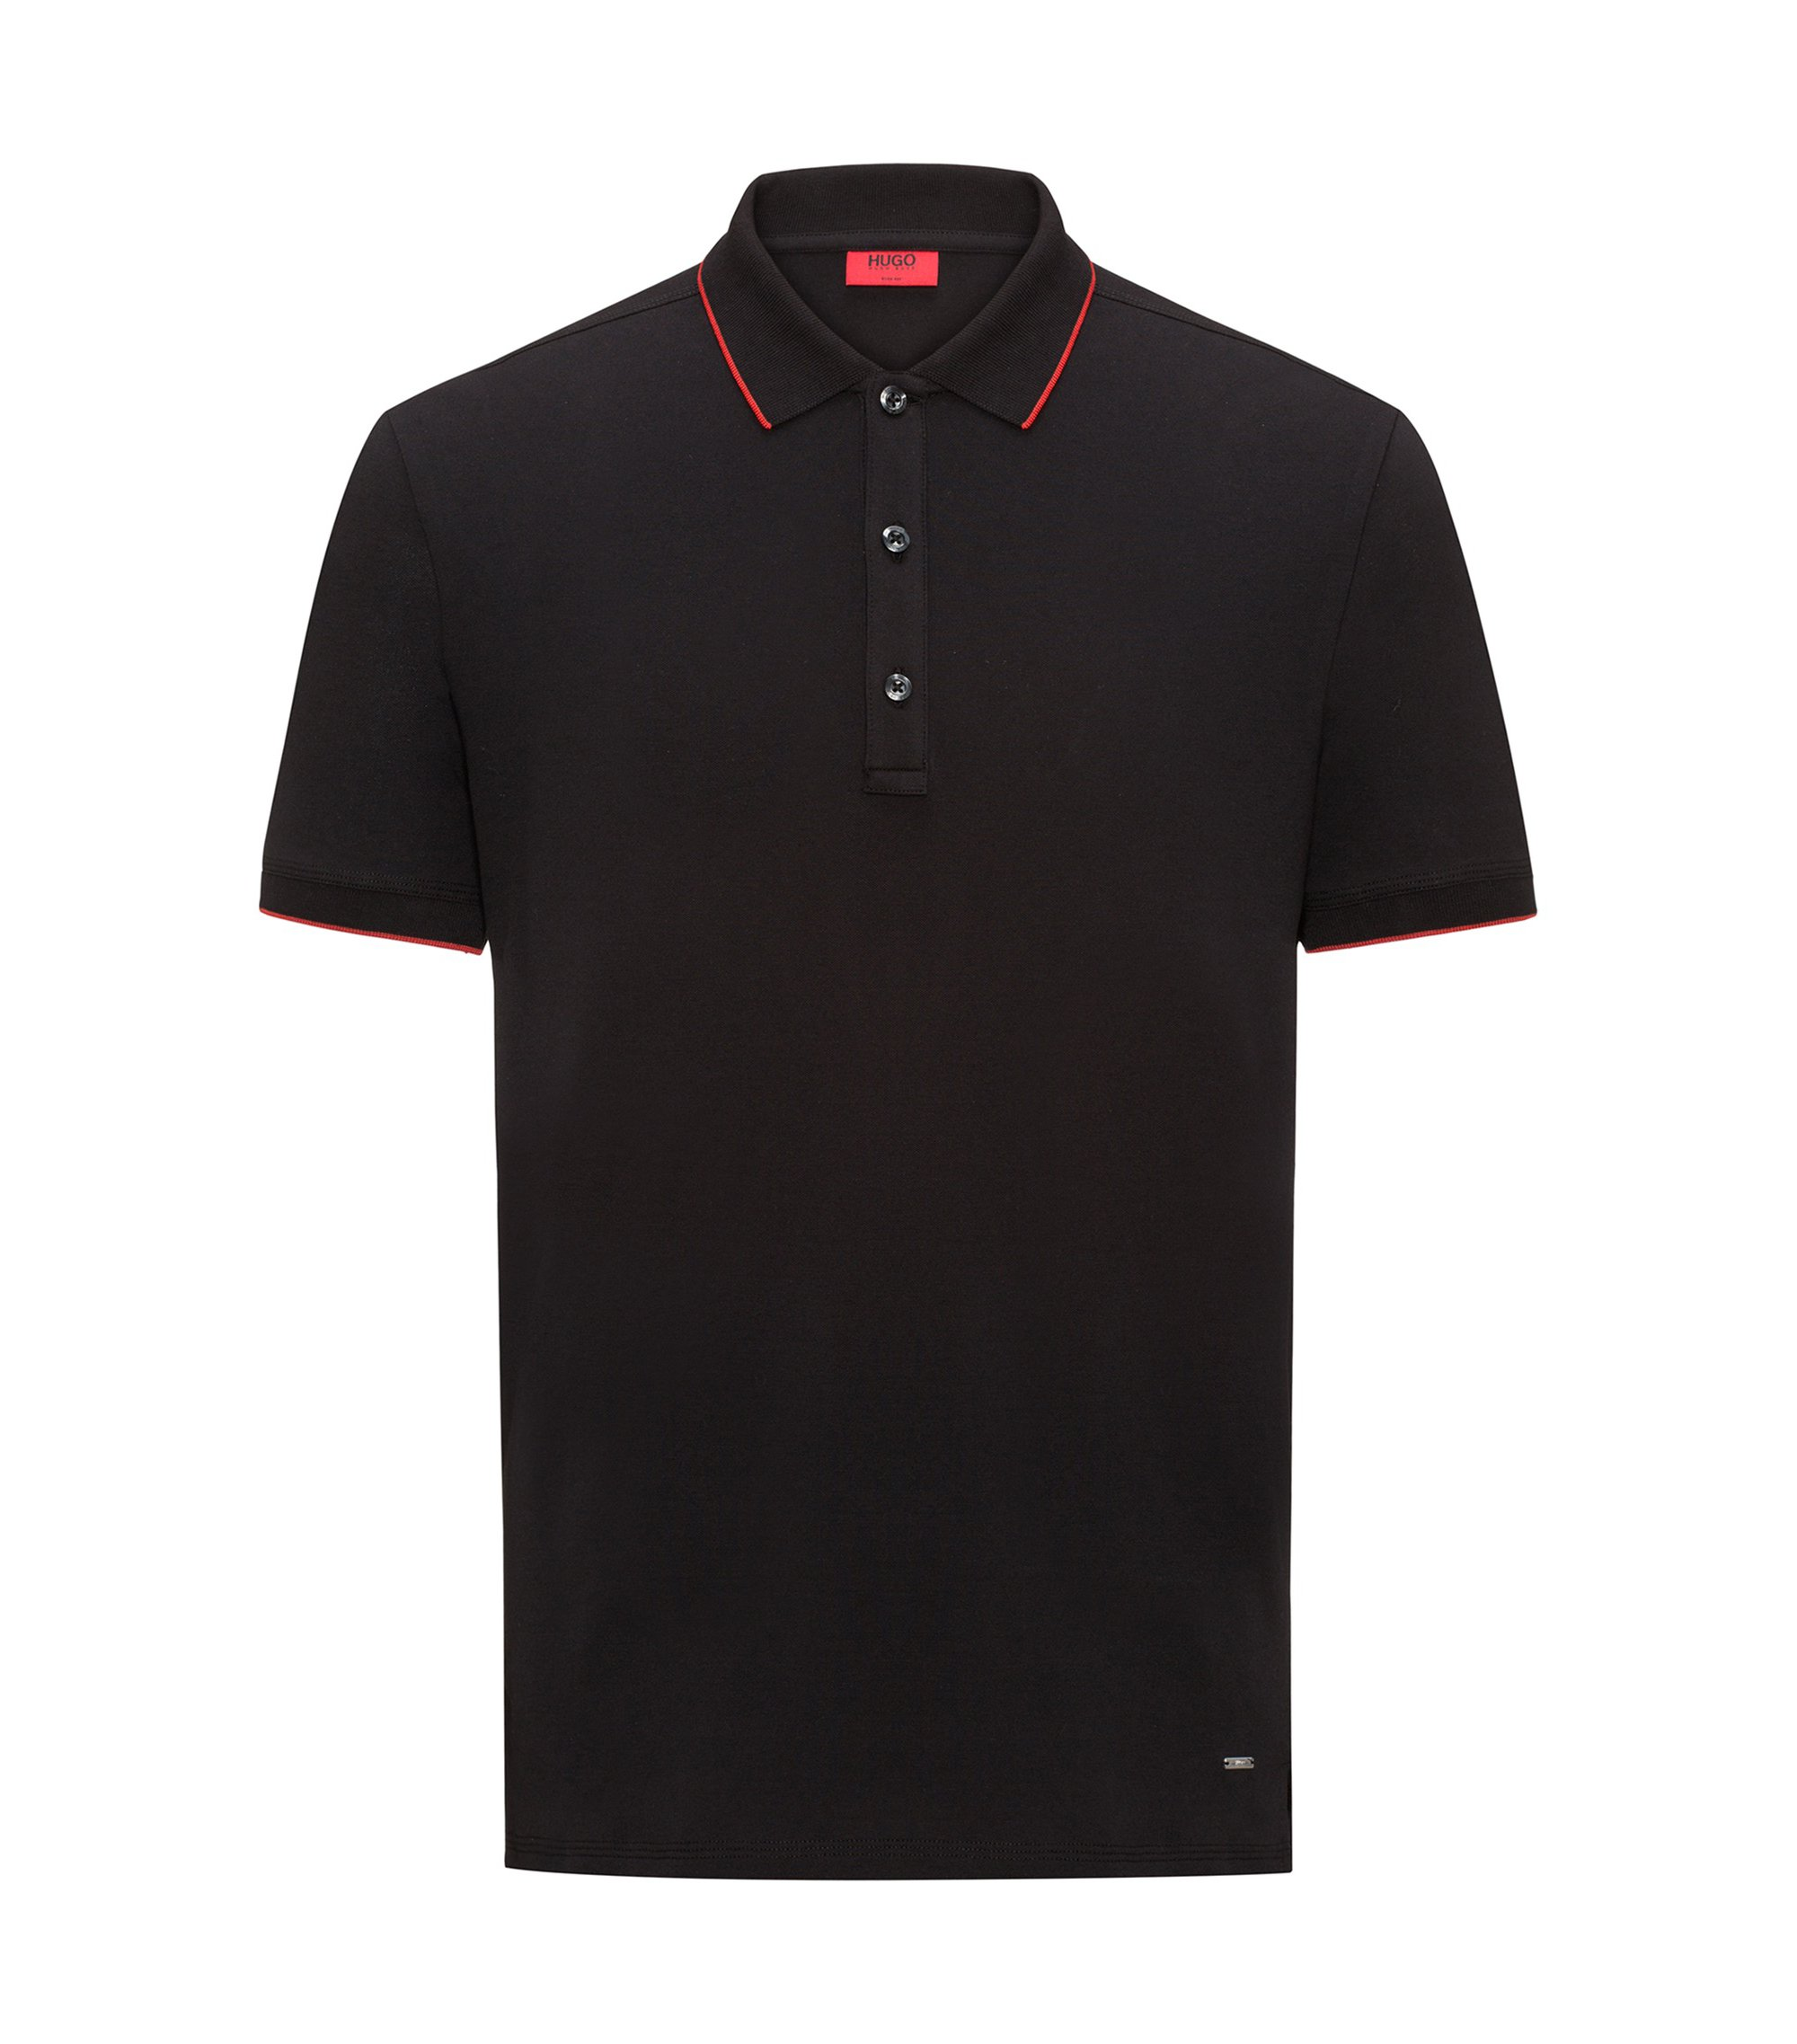 Stretch Cotton Polo Shirt, Slim Fit | Dinoso, Black